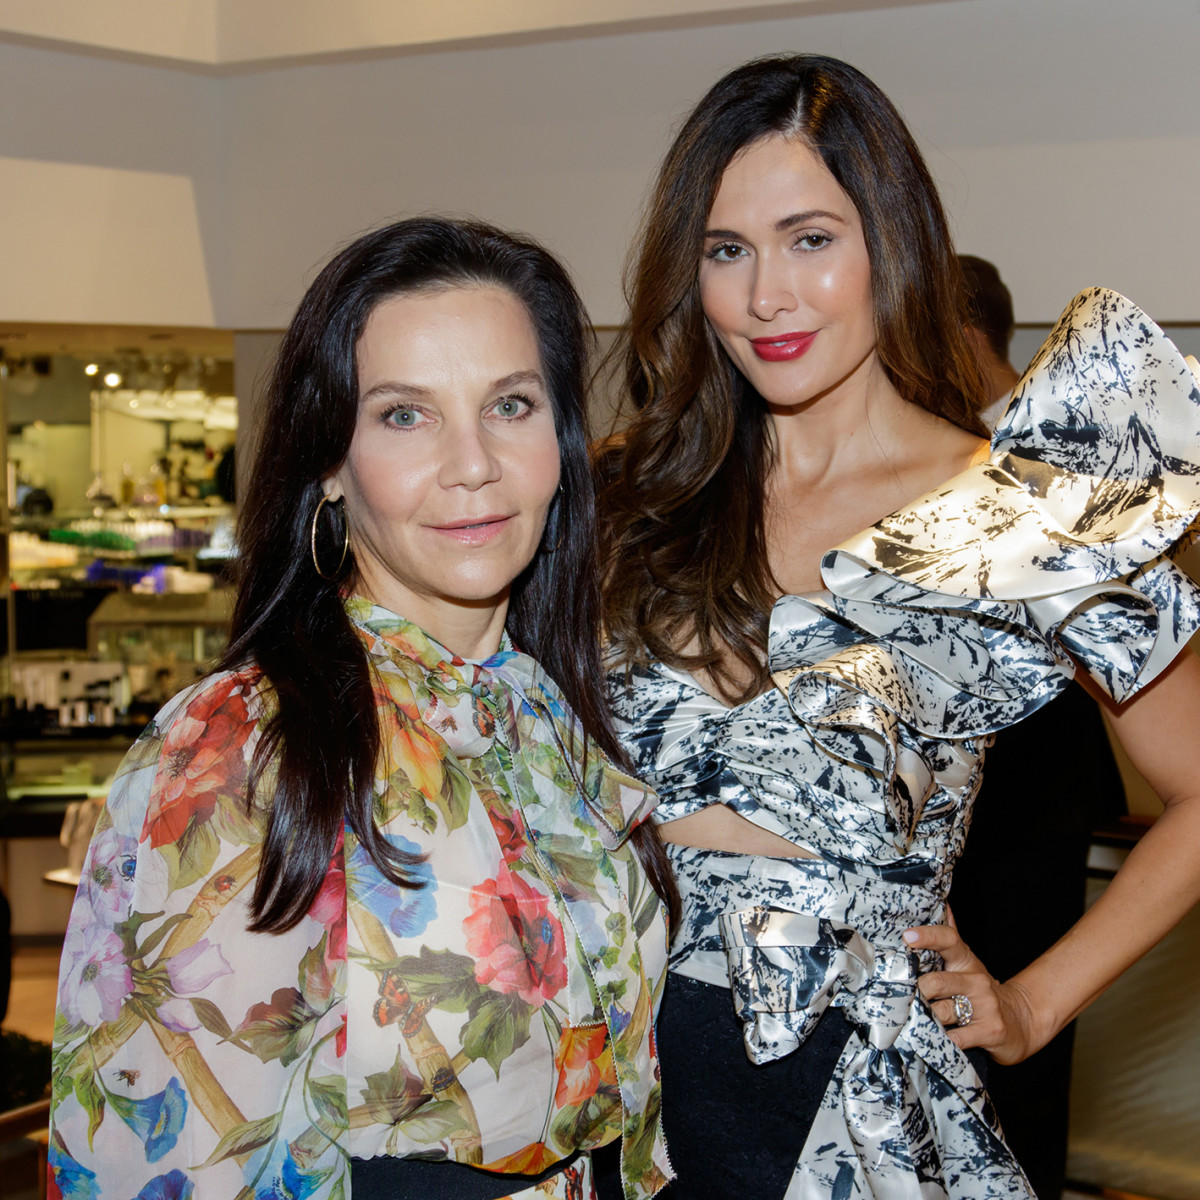 Stylish socialites turn out for start of Dallas' fall ...